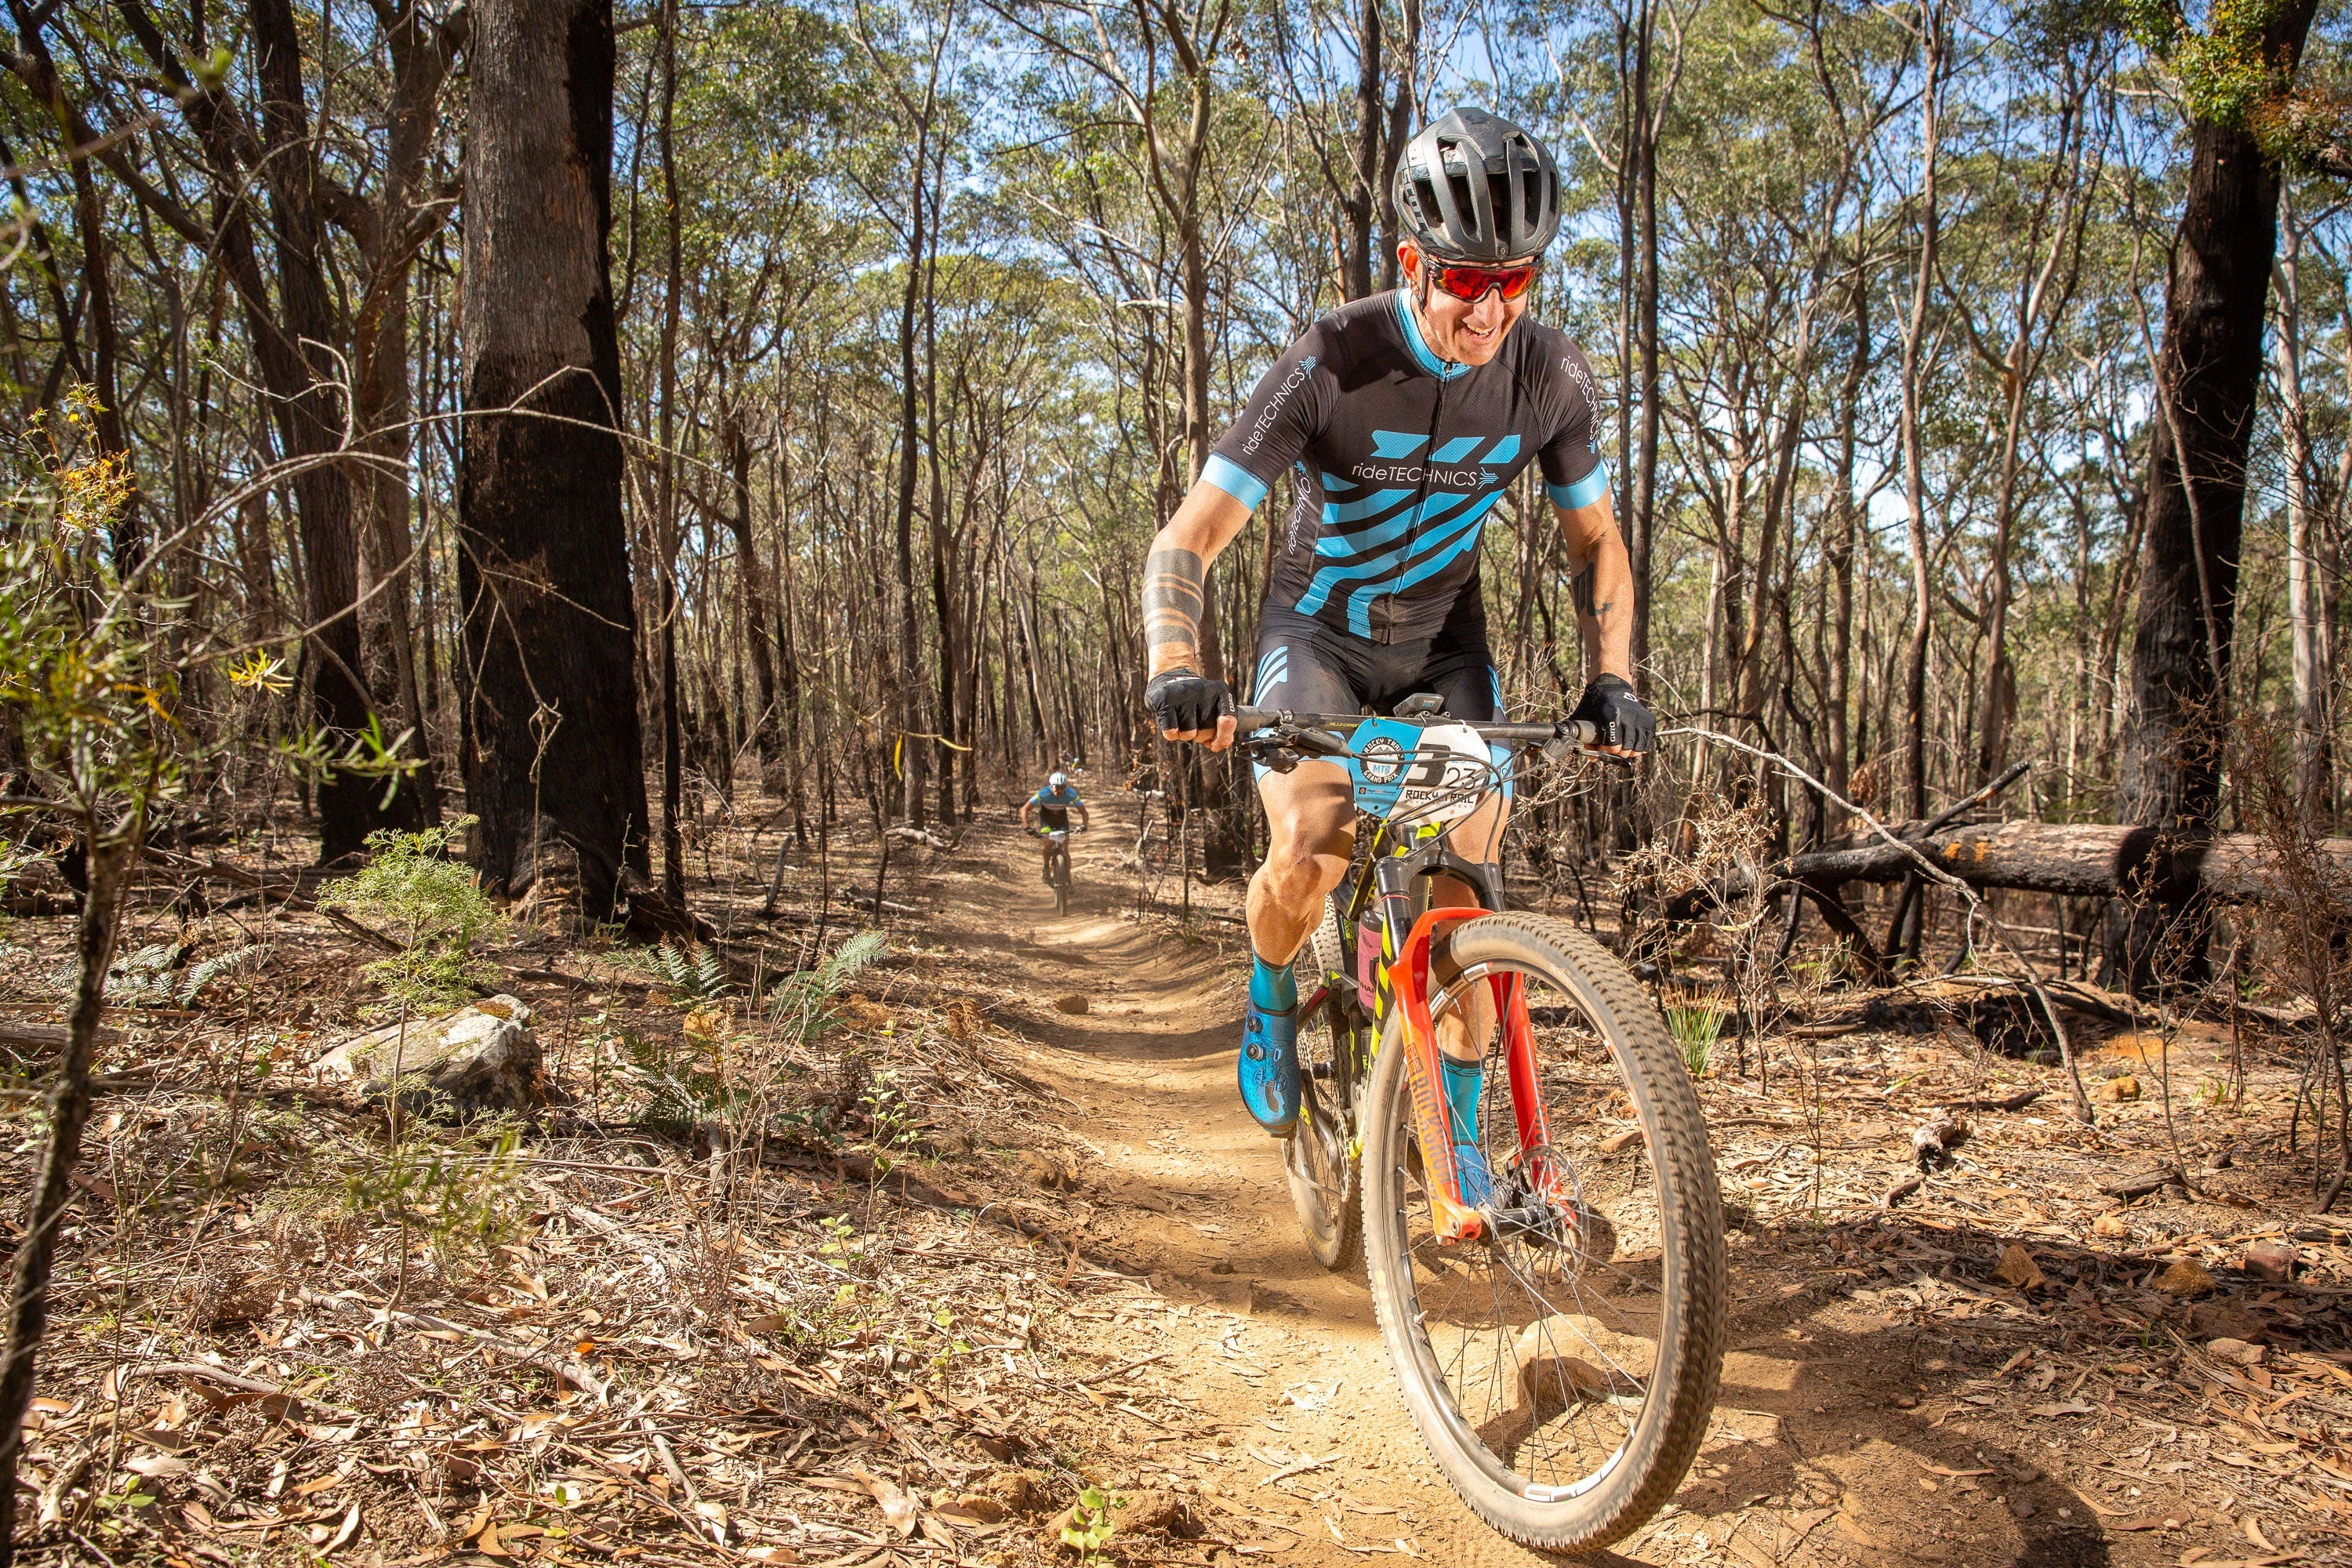 Shimano Mountain Bike Grand Prix Race Six Kempsey - Tourism Gold Coast